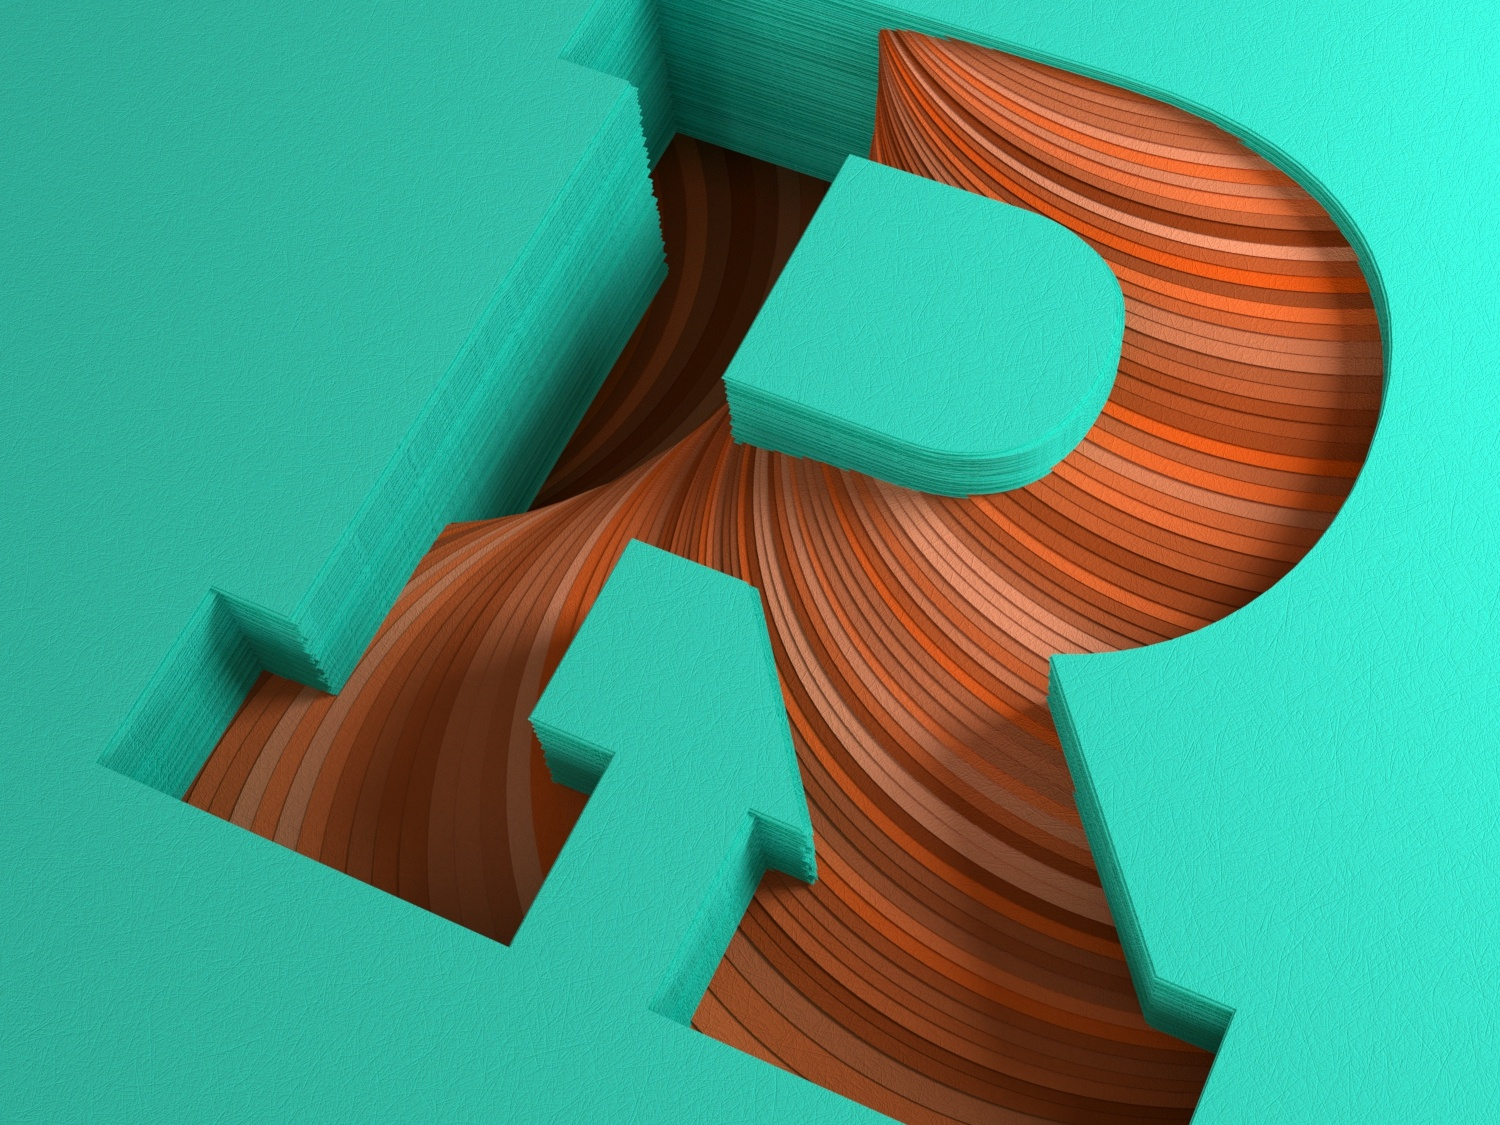 Paper R for 36 Days of Type 36daysoftype type daily render c4d everyday daily soy tico costa rica mrs. constancy cgi 3d